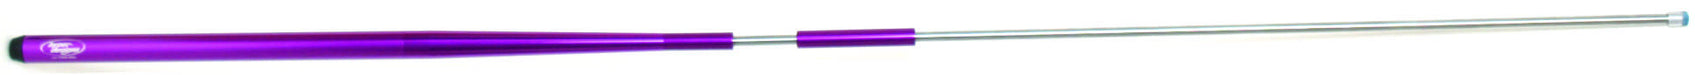 LINEAR Q - PURPLE - AMERICAN RECORDER TECHNOLOGIES, INC.